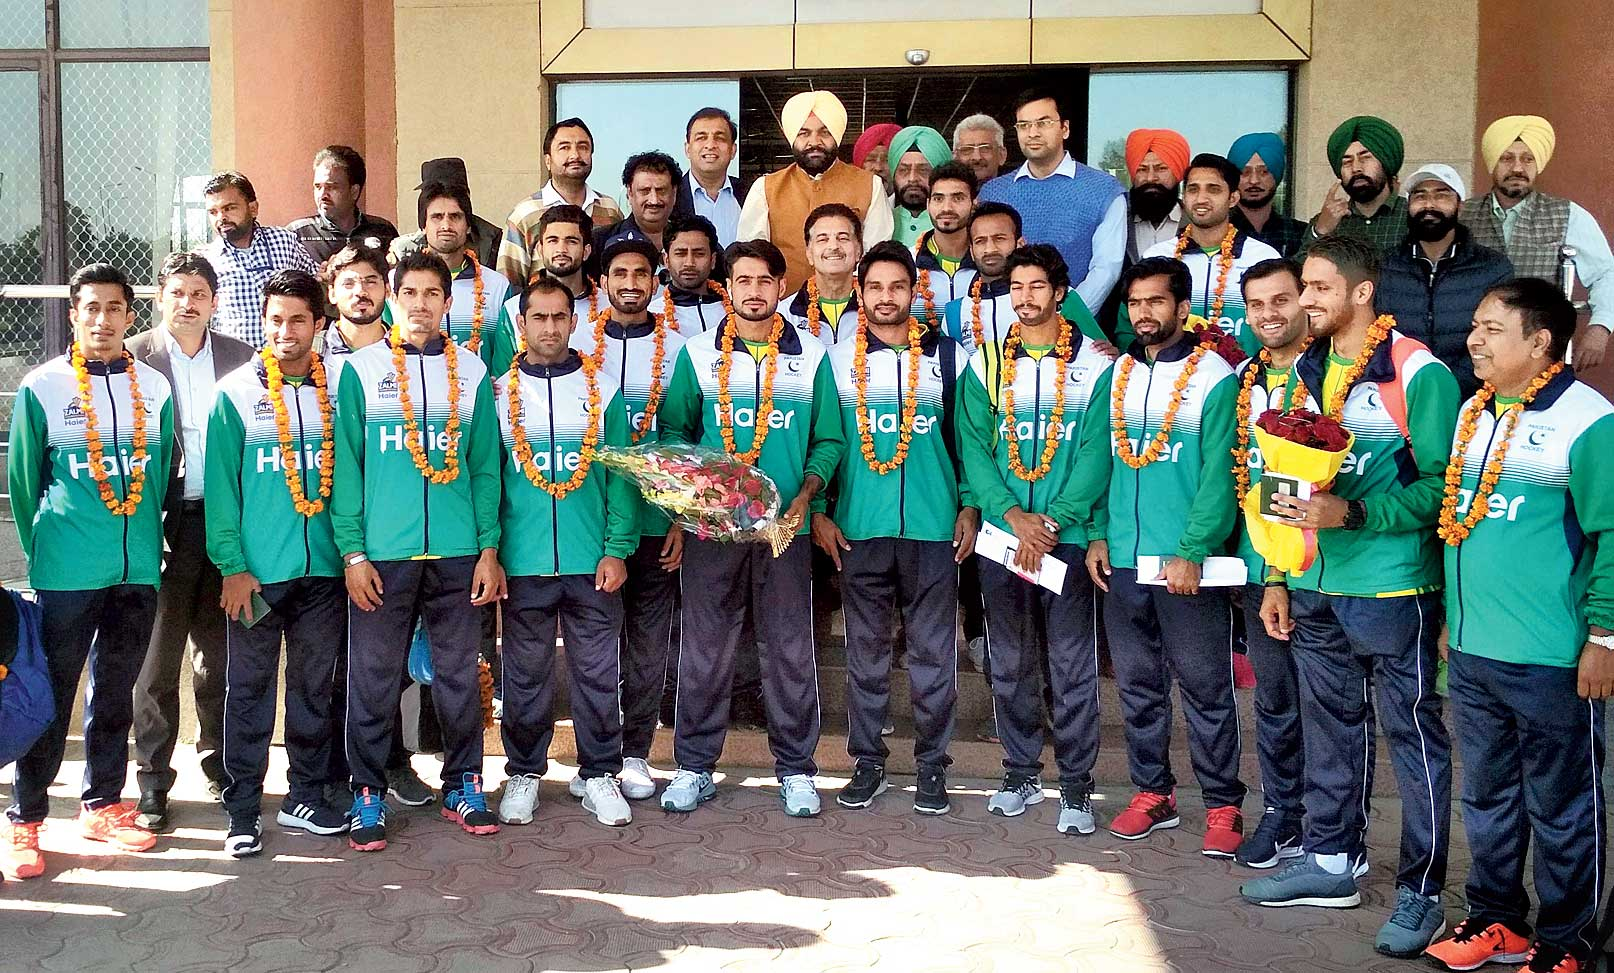 Pakistani hockey players enter India through the Wagha-Attari border on Saturday to take part in the Men's Hockey World Cup in Bhubaneswar.